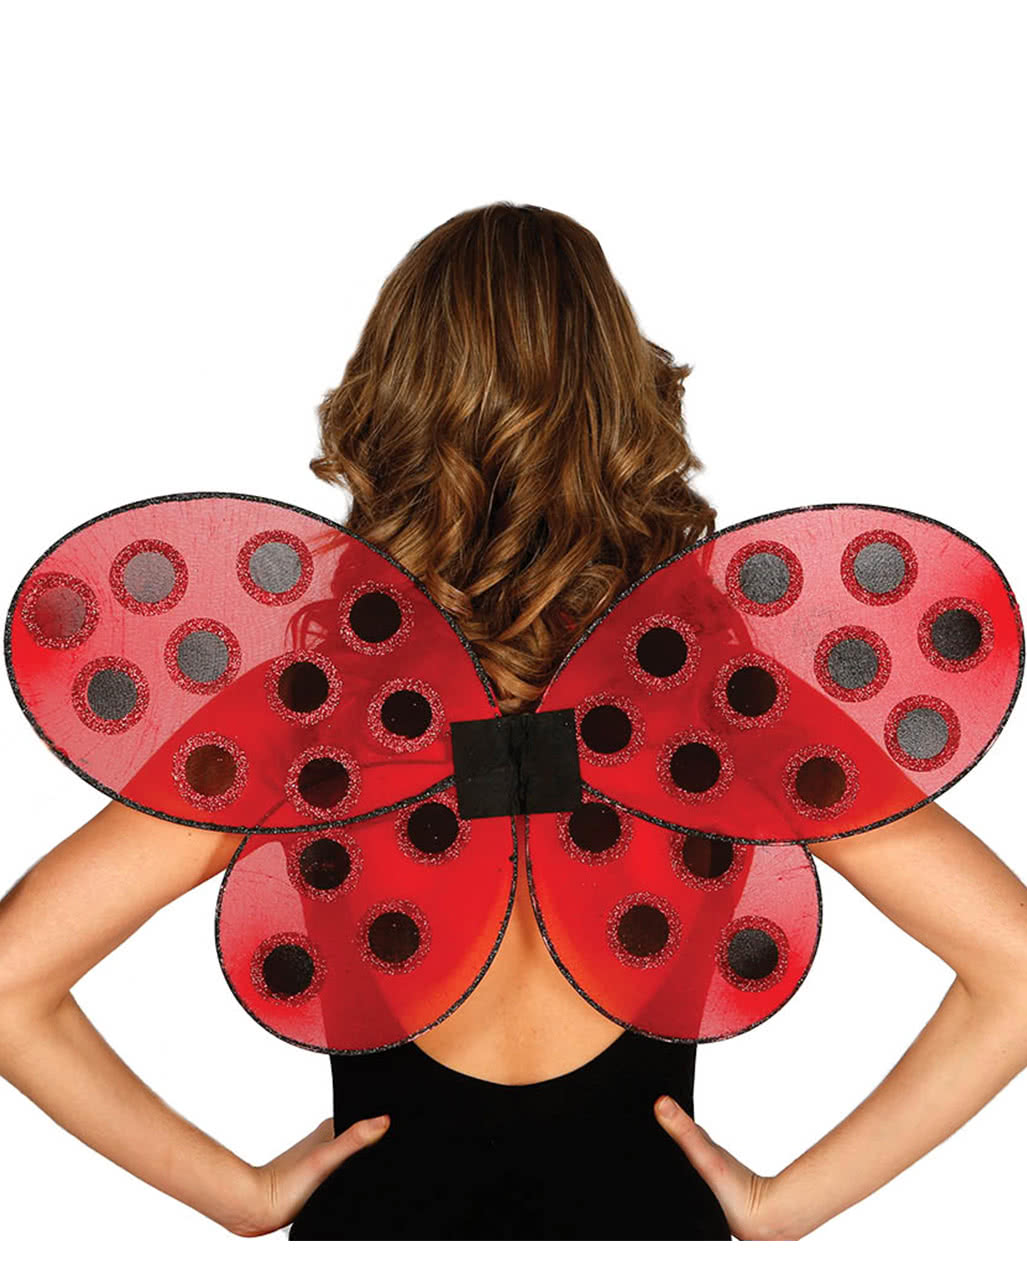 wings adults Ladybug for